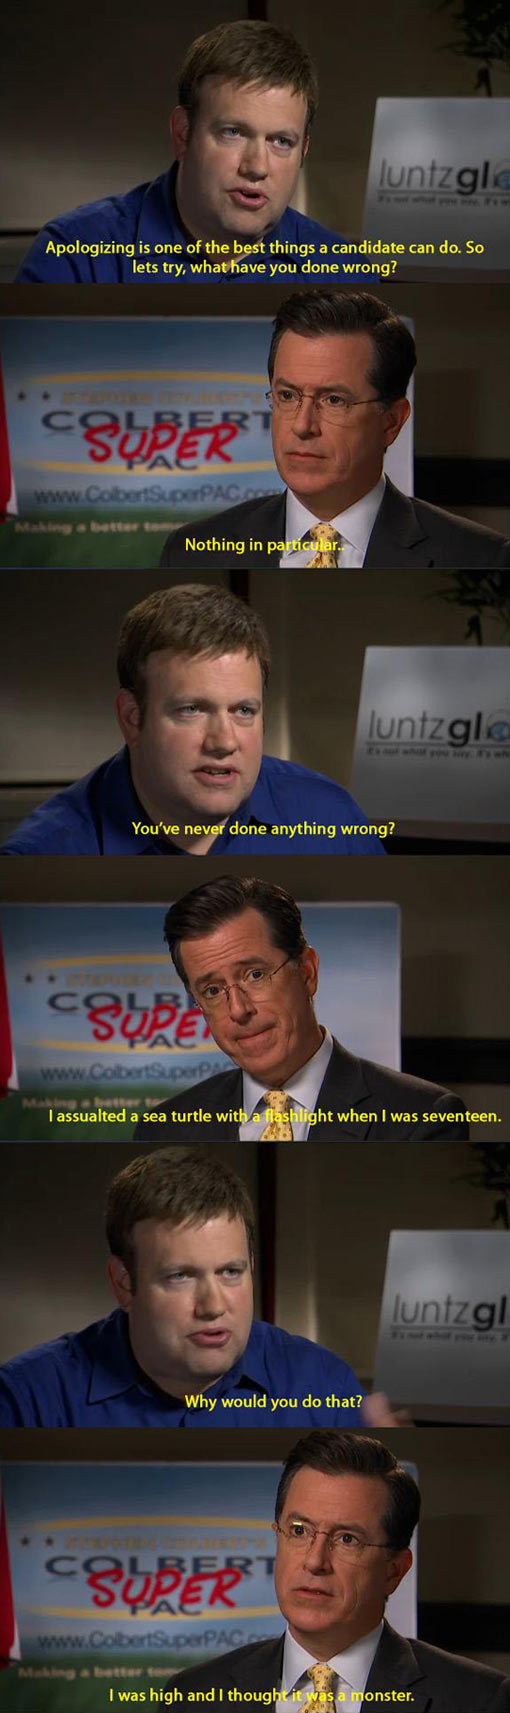 Colbert confesses to his wrongdoings…